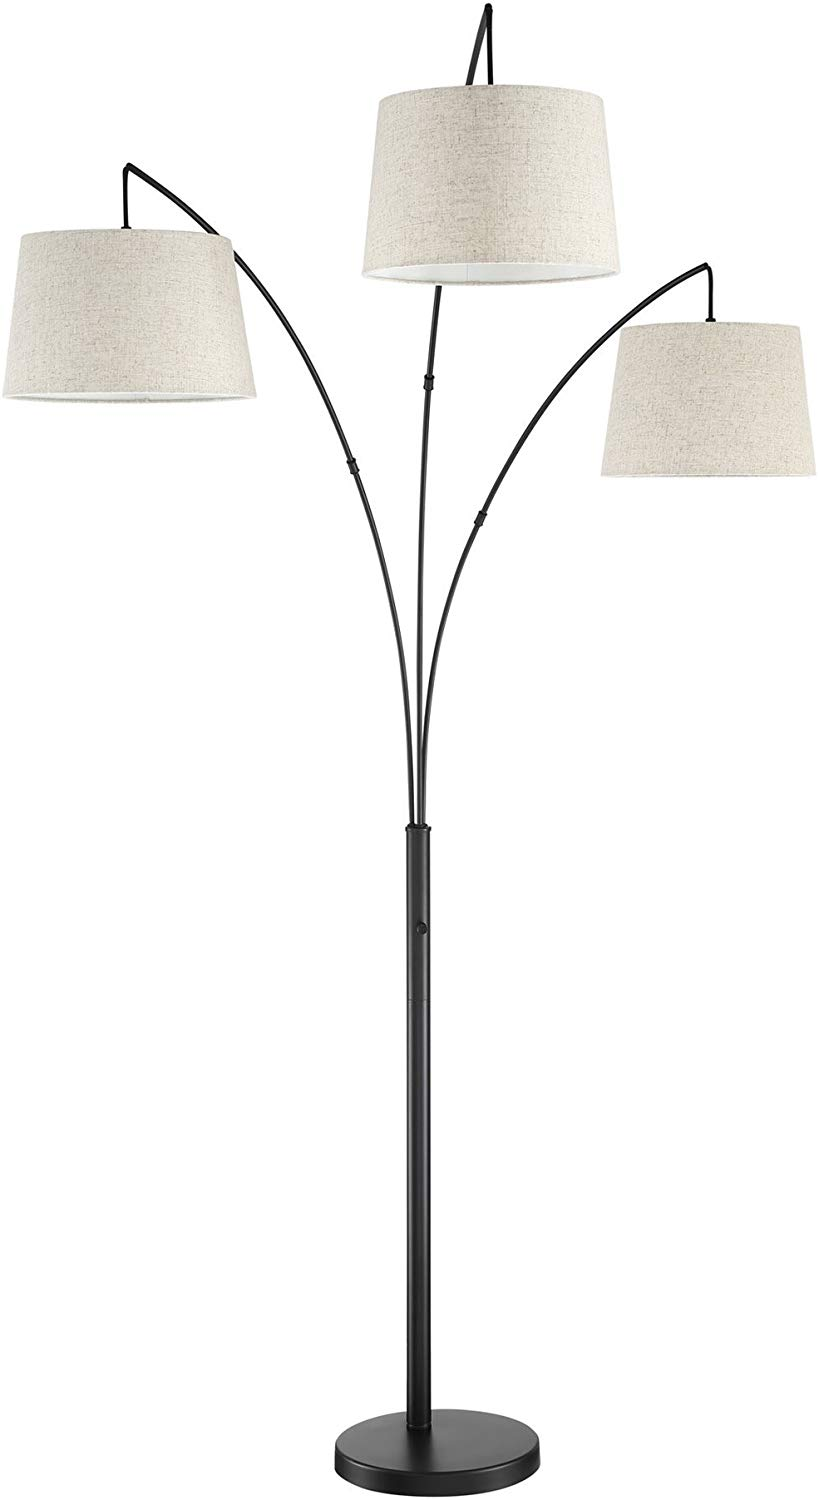 a three headed floor lamp with white hanging shades